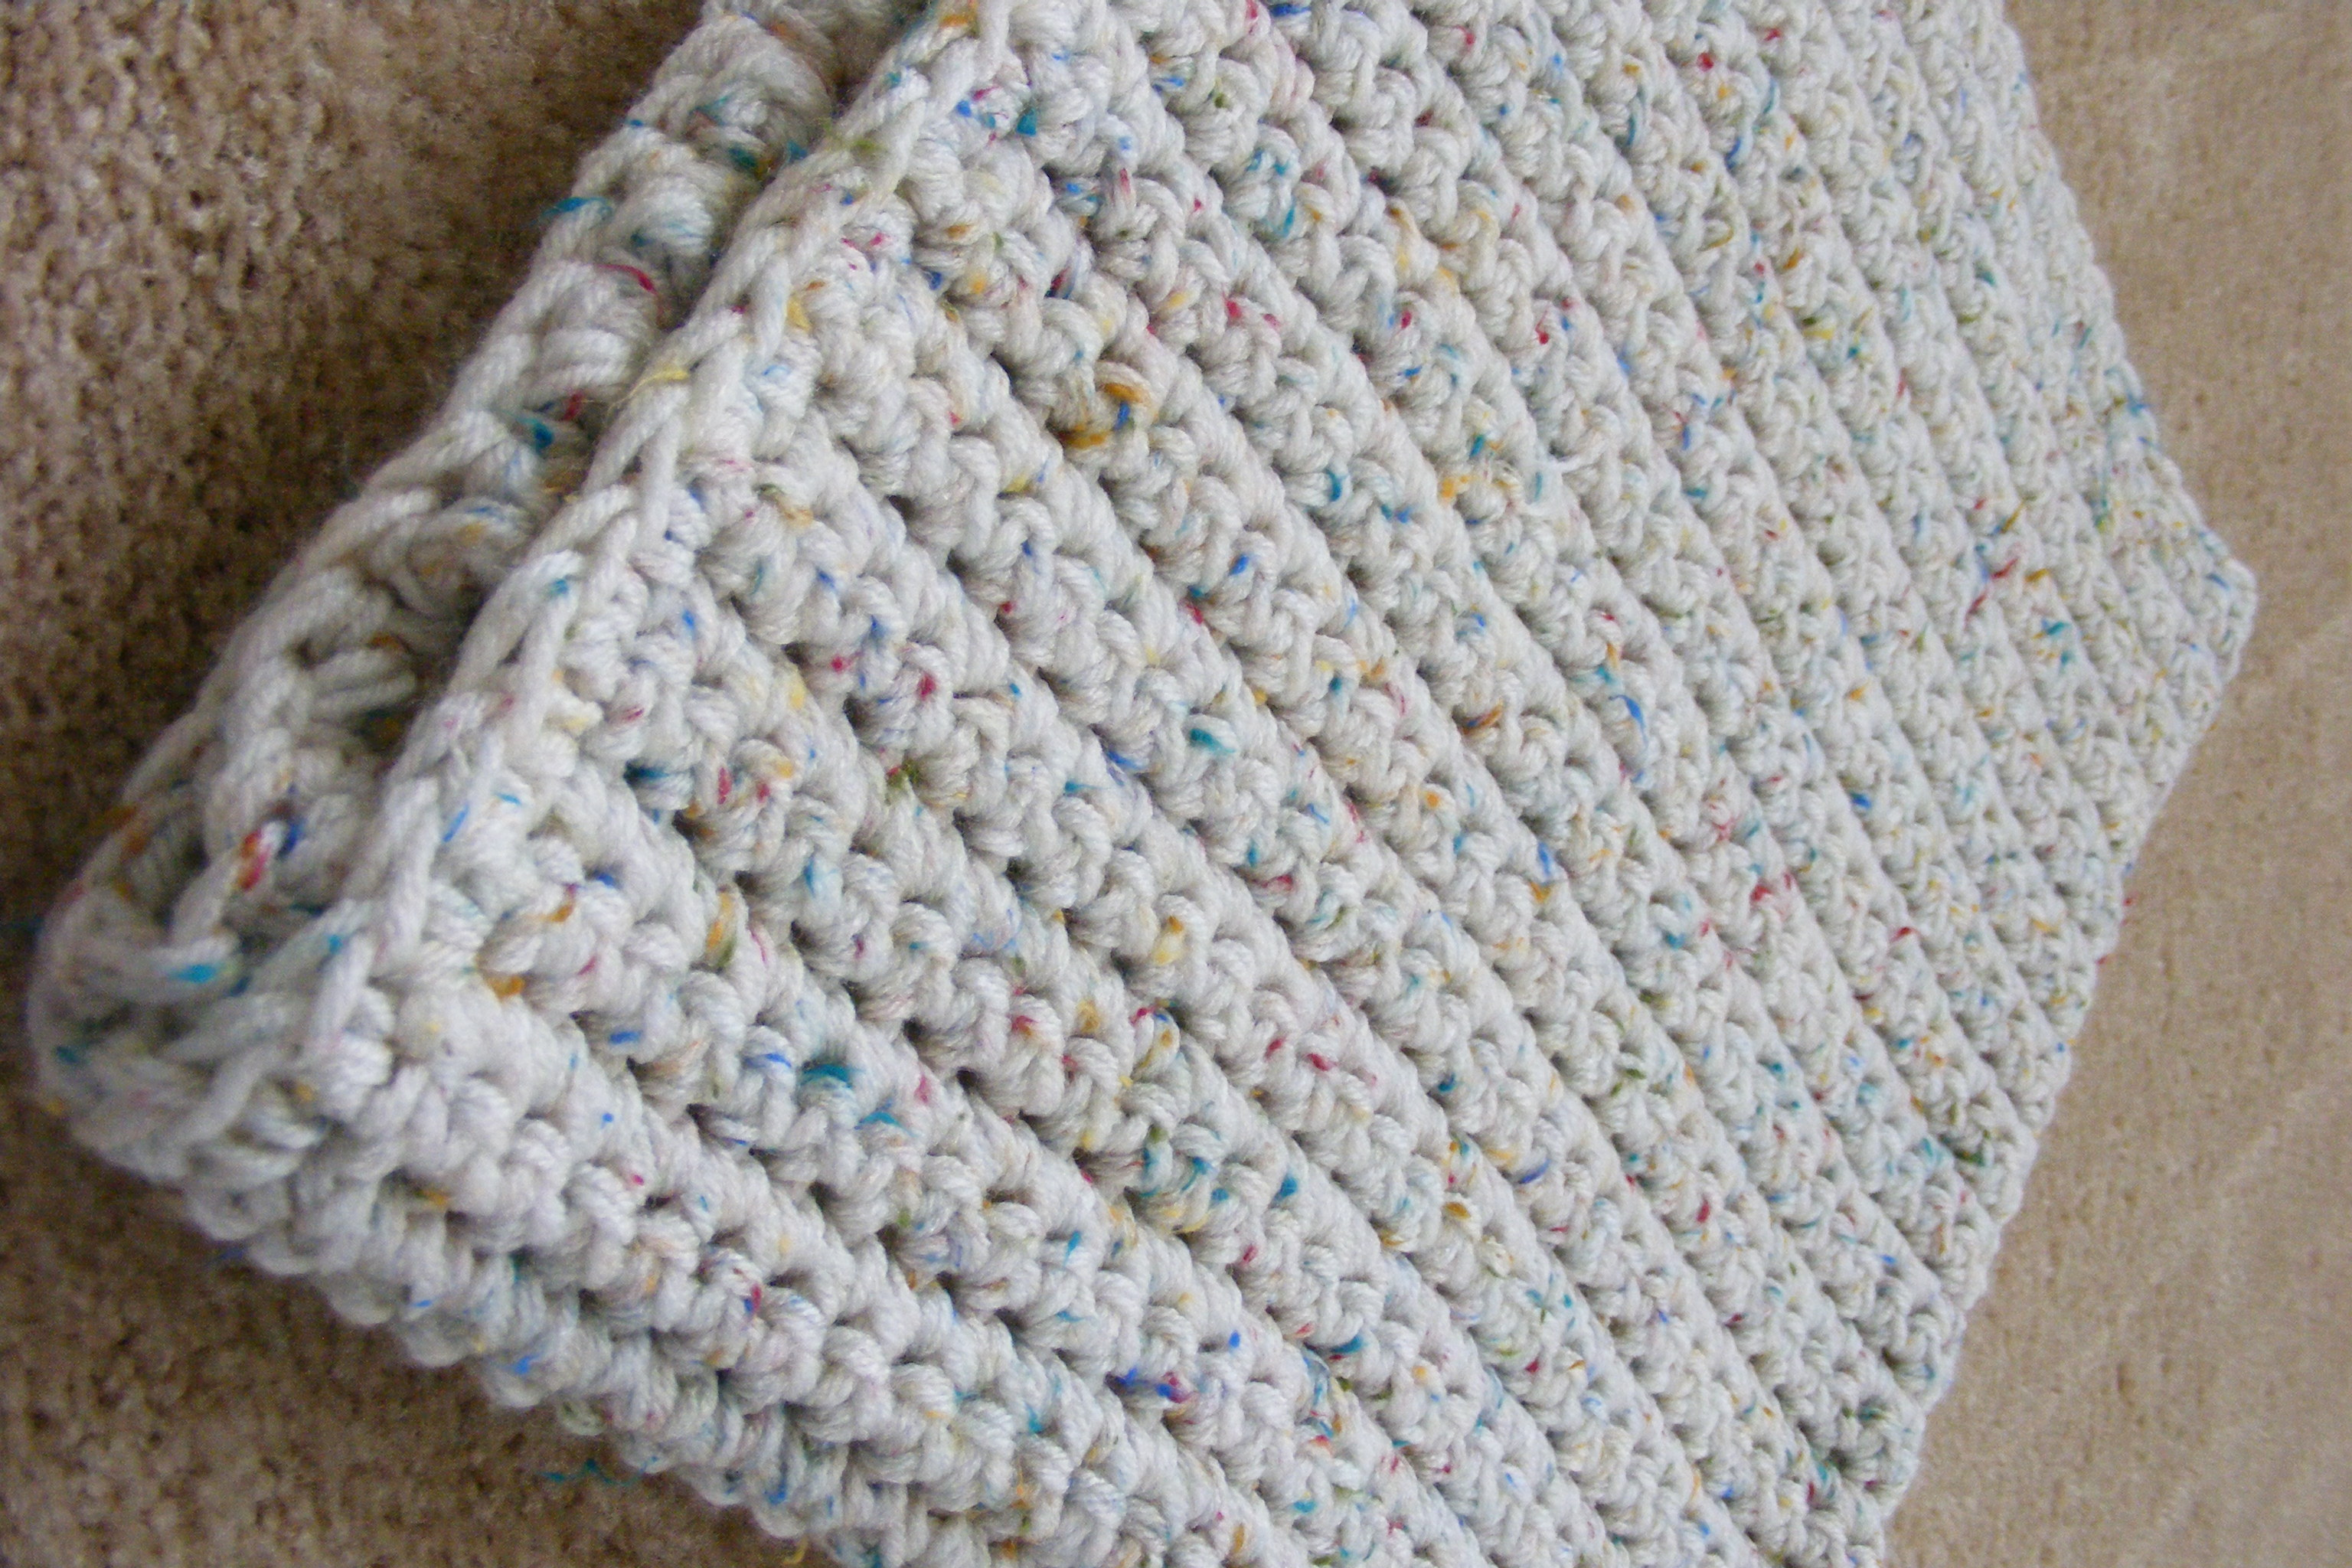 Crochet Patterns Baby Quilts : Single Crochet Baby Blanket Pattern GretchKals Yarny Adventures